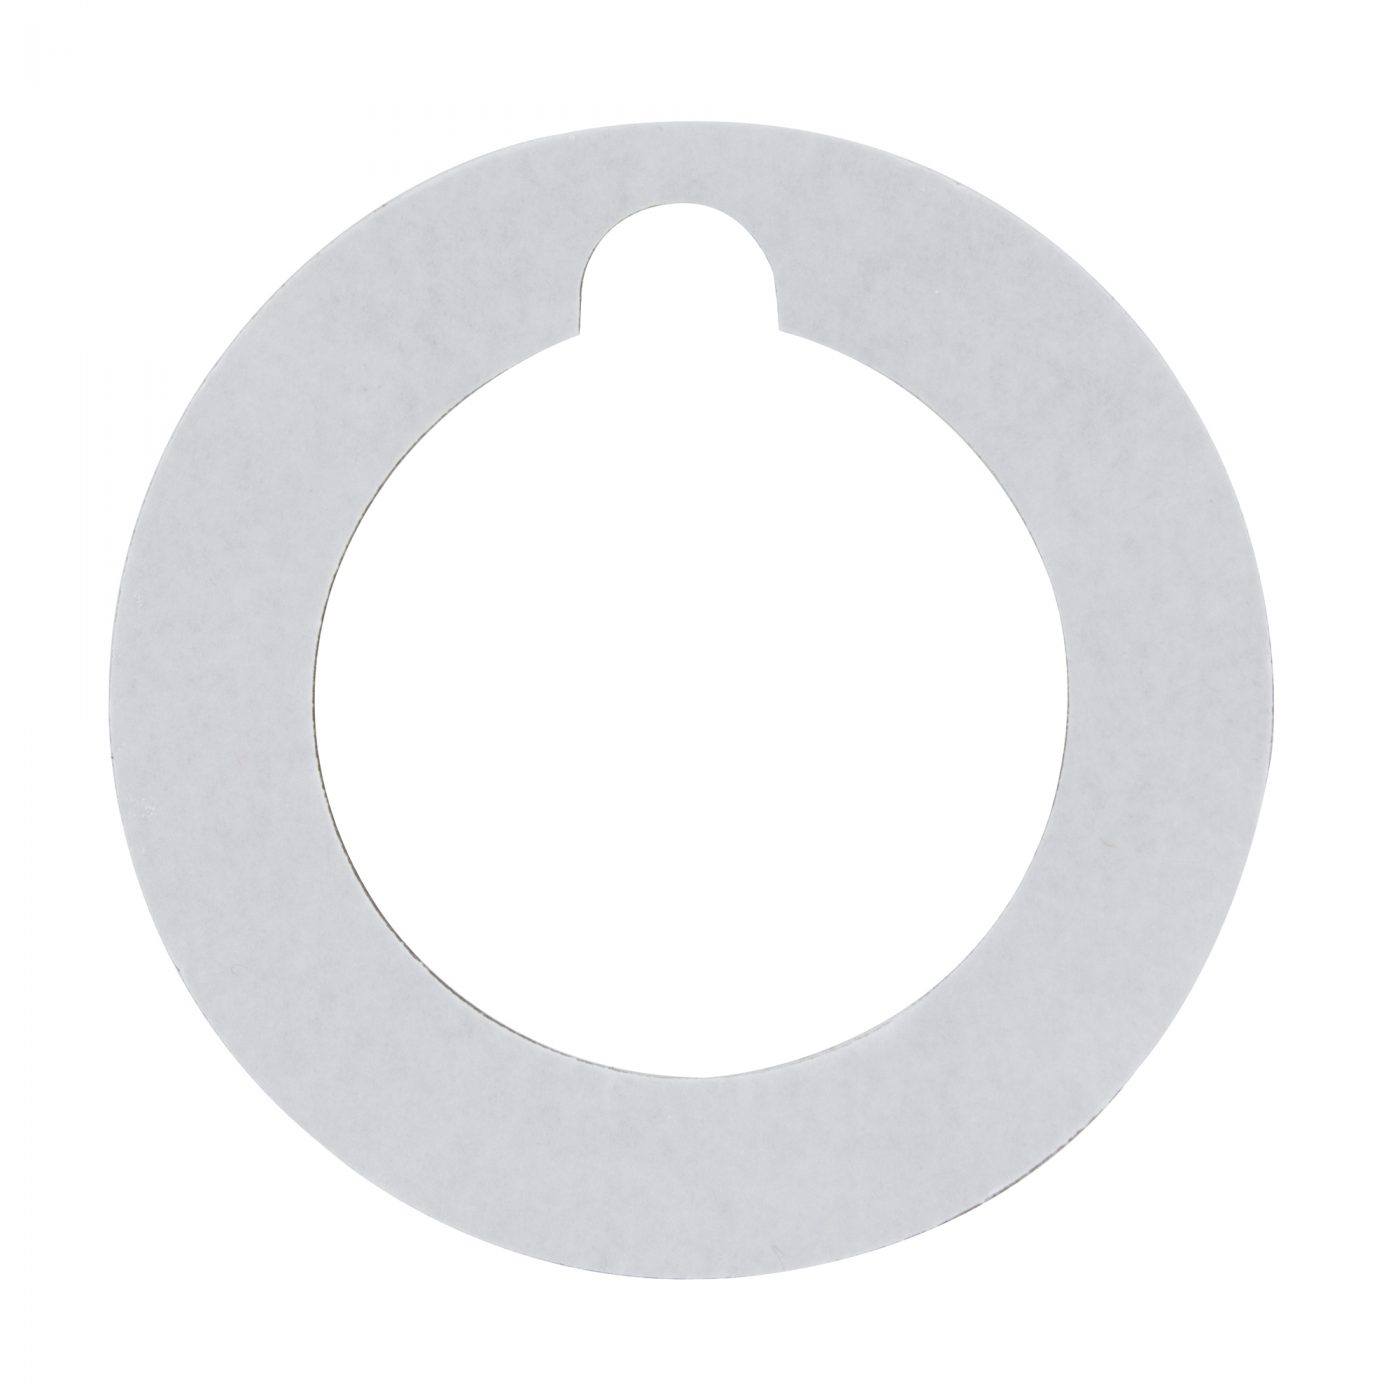 Hole Saw Guide Mounting Tape